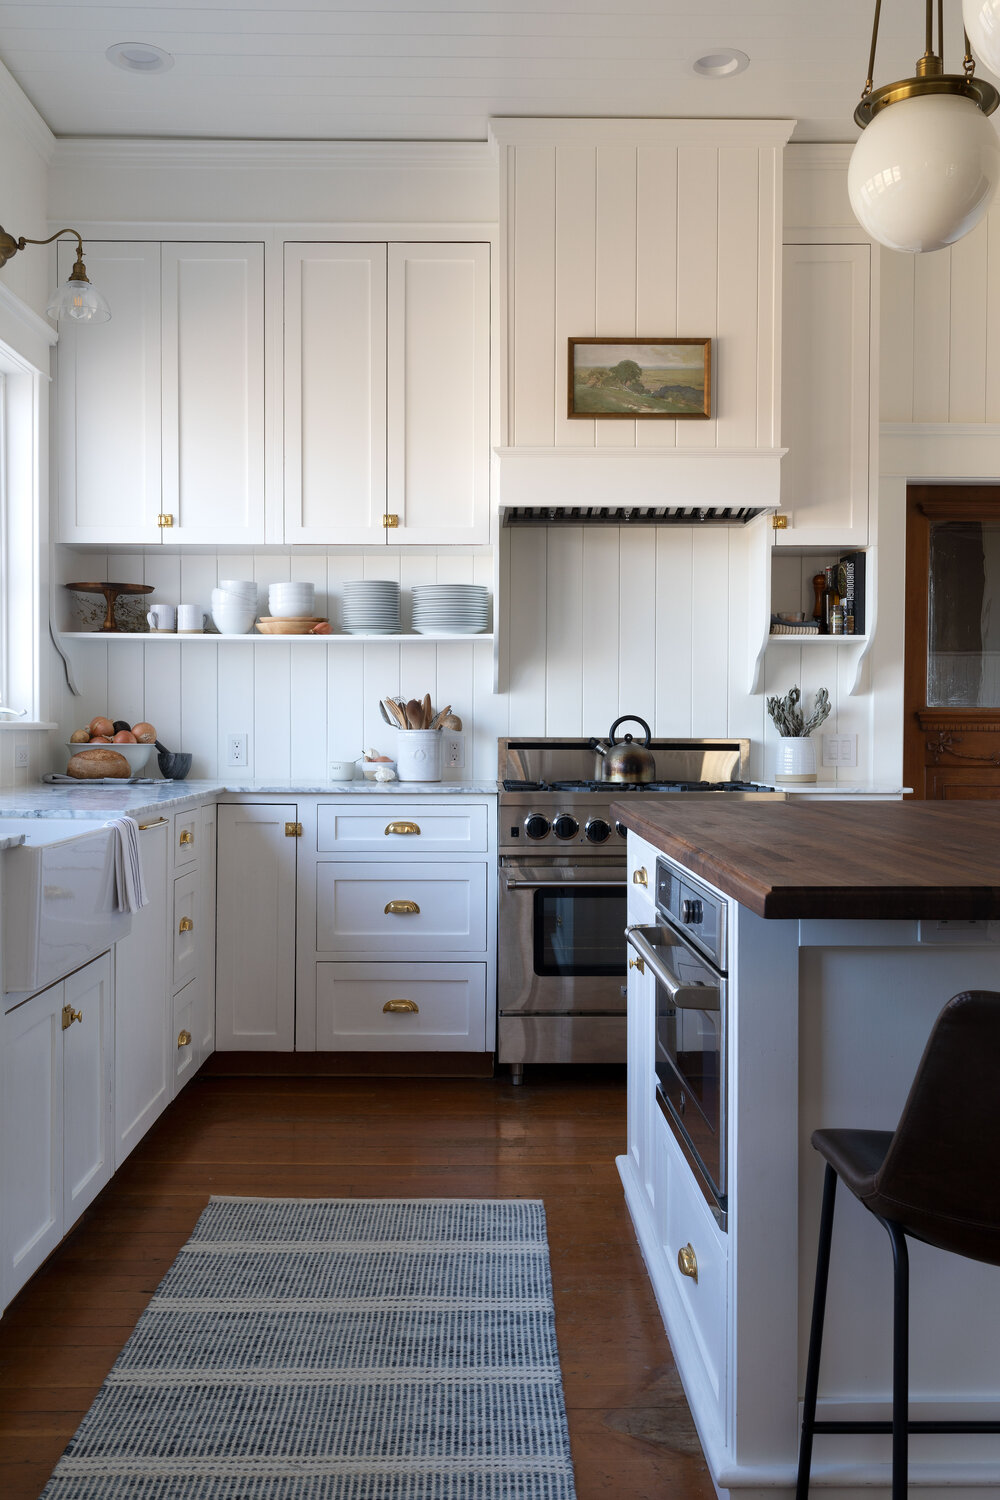 Why We Added A Backsplash To Our Range How The Paneling Is Holding Up The Grit And Polish